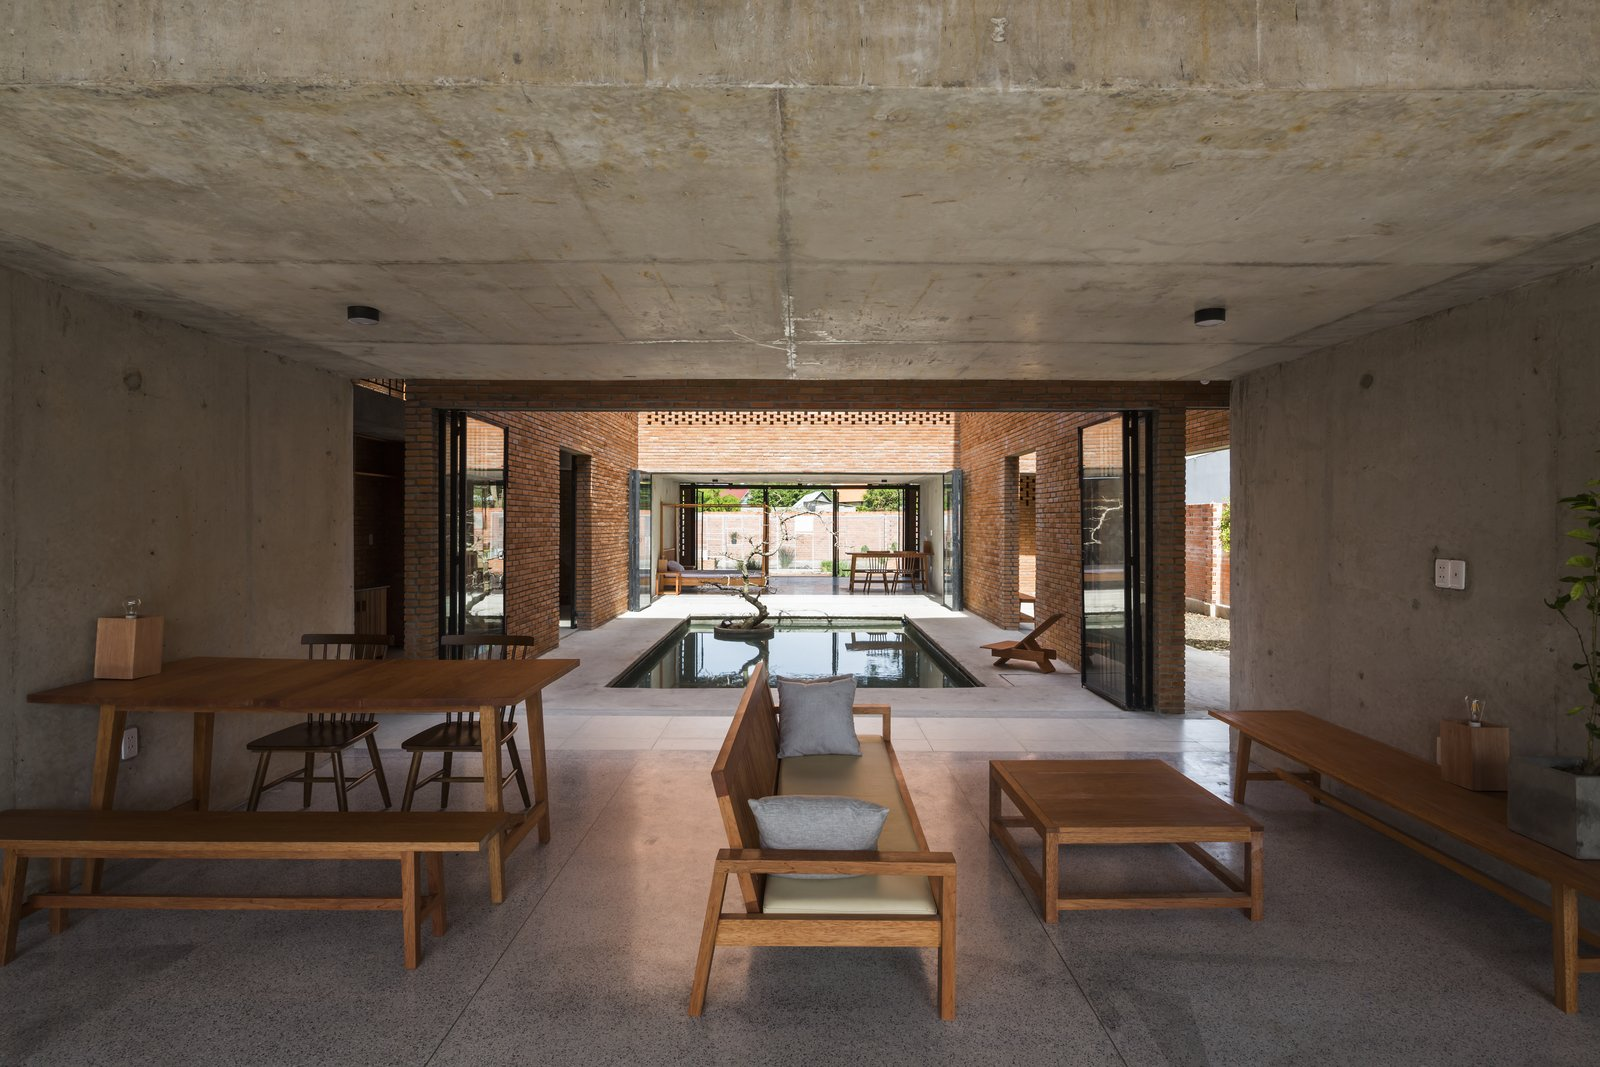 Living Room, Concrete Floor, Console Tables, Ceiling Lighting, Bench, Coffee Tables, Sofa, and Table Plenty of interior and exterior apertures bring in light and cool breezes.  Photo 3 of 15 in Light and Shadow Help Shape This Modern Brick House in Vietnam